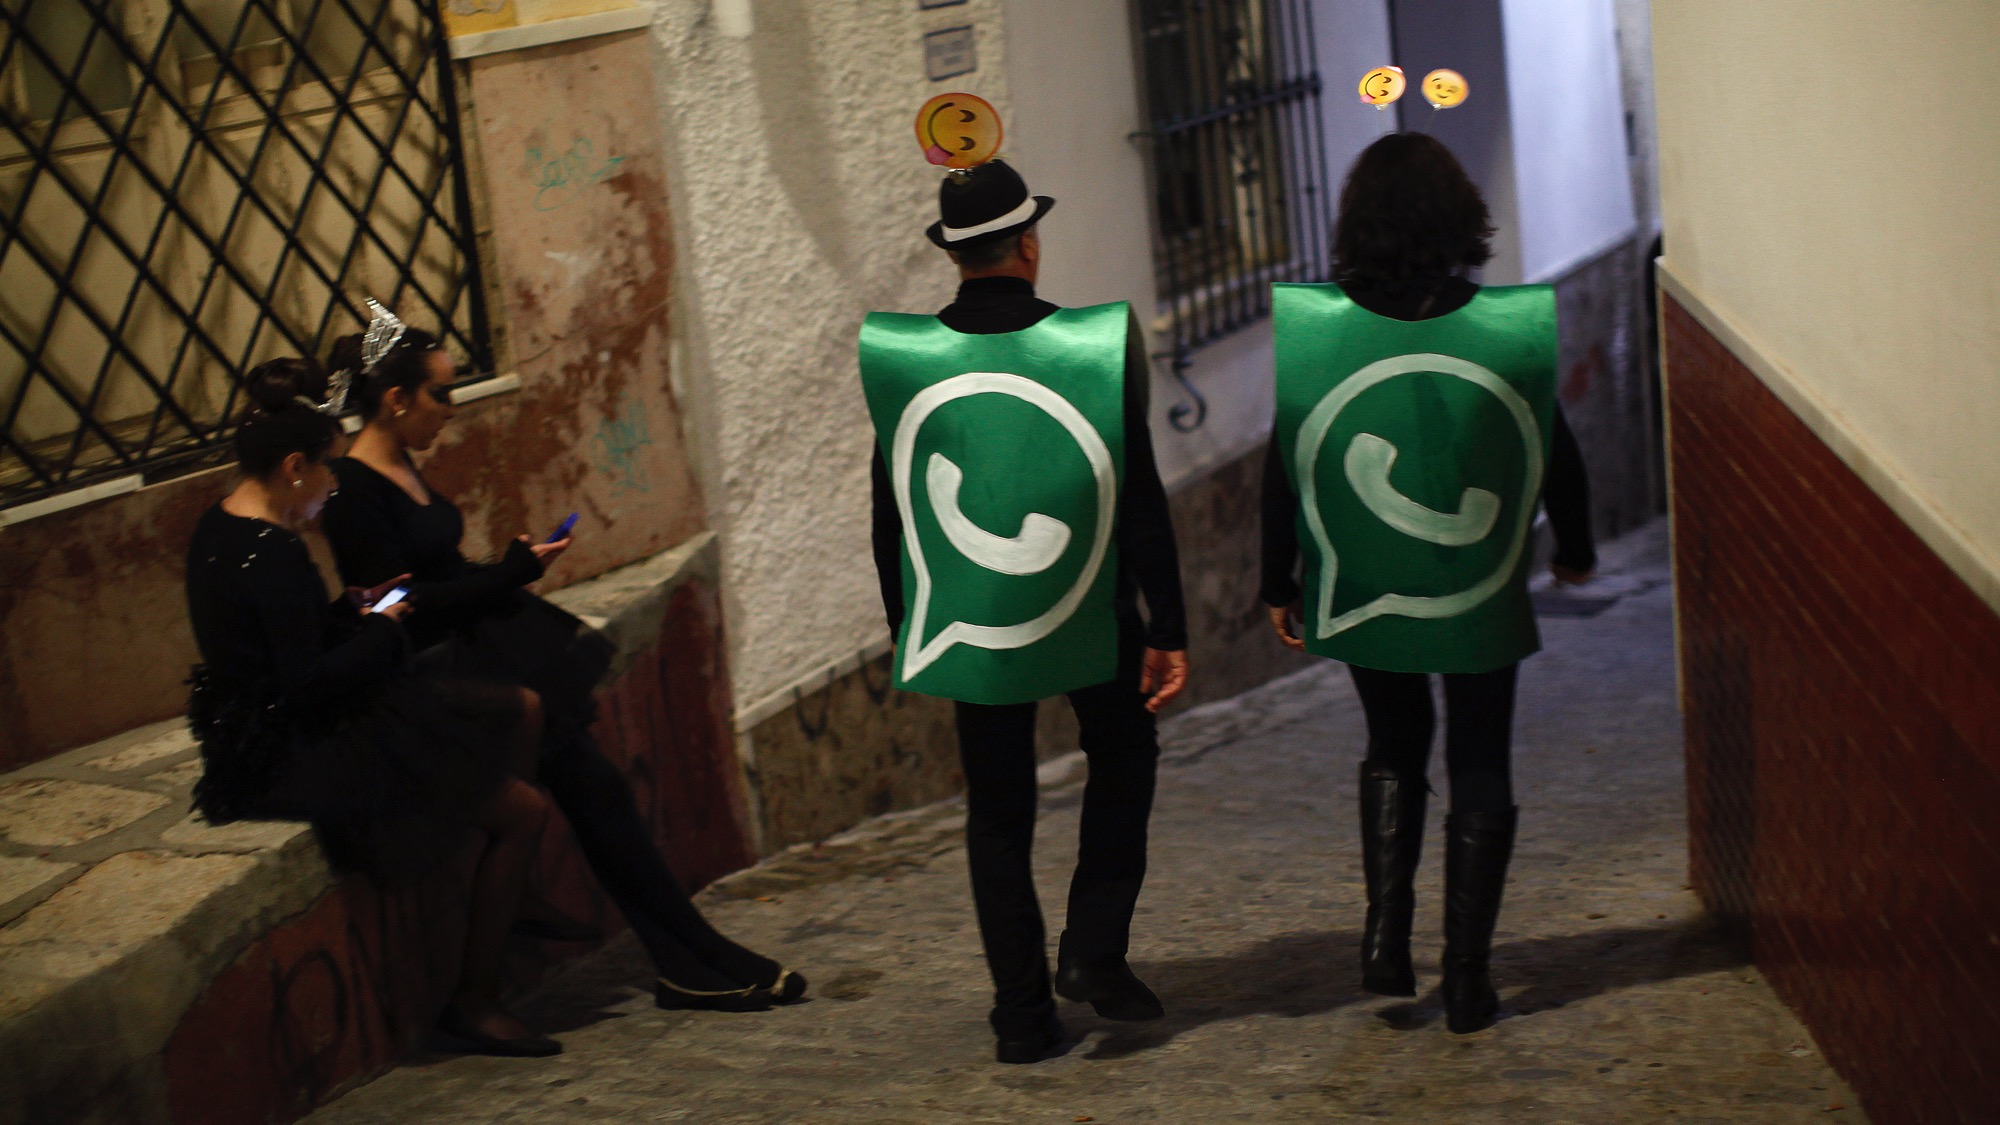 Revellers dressed up as dancers of 'Black Swan' check their mobile phones next to revellers dressed up as a Whatsapp logo as they take part in New Year's celebrations in Coin, near Malaga, southern Spain, early January 1, 2015. Villagers and revellers dressed up in funny costumes to take part in the New Year's celebration. REUTERS/Jon Nazca (SPAIN - Tags: SOCIETY ANNIVERSARY TPX IMAGES OF THE DAY) - RTR4JT1Z